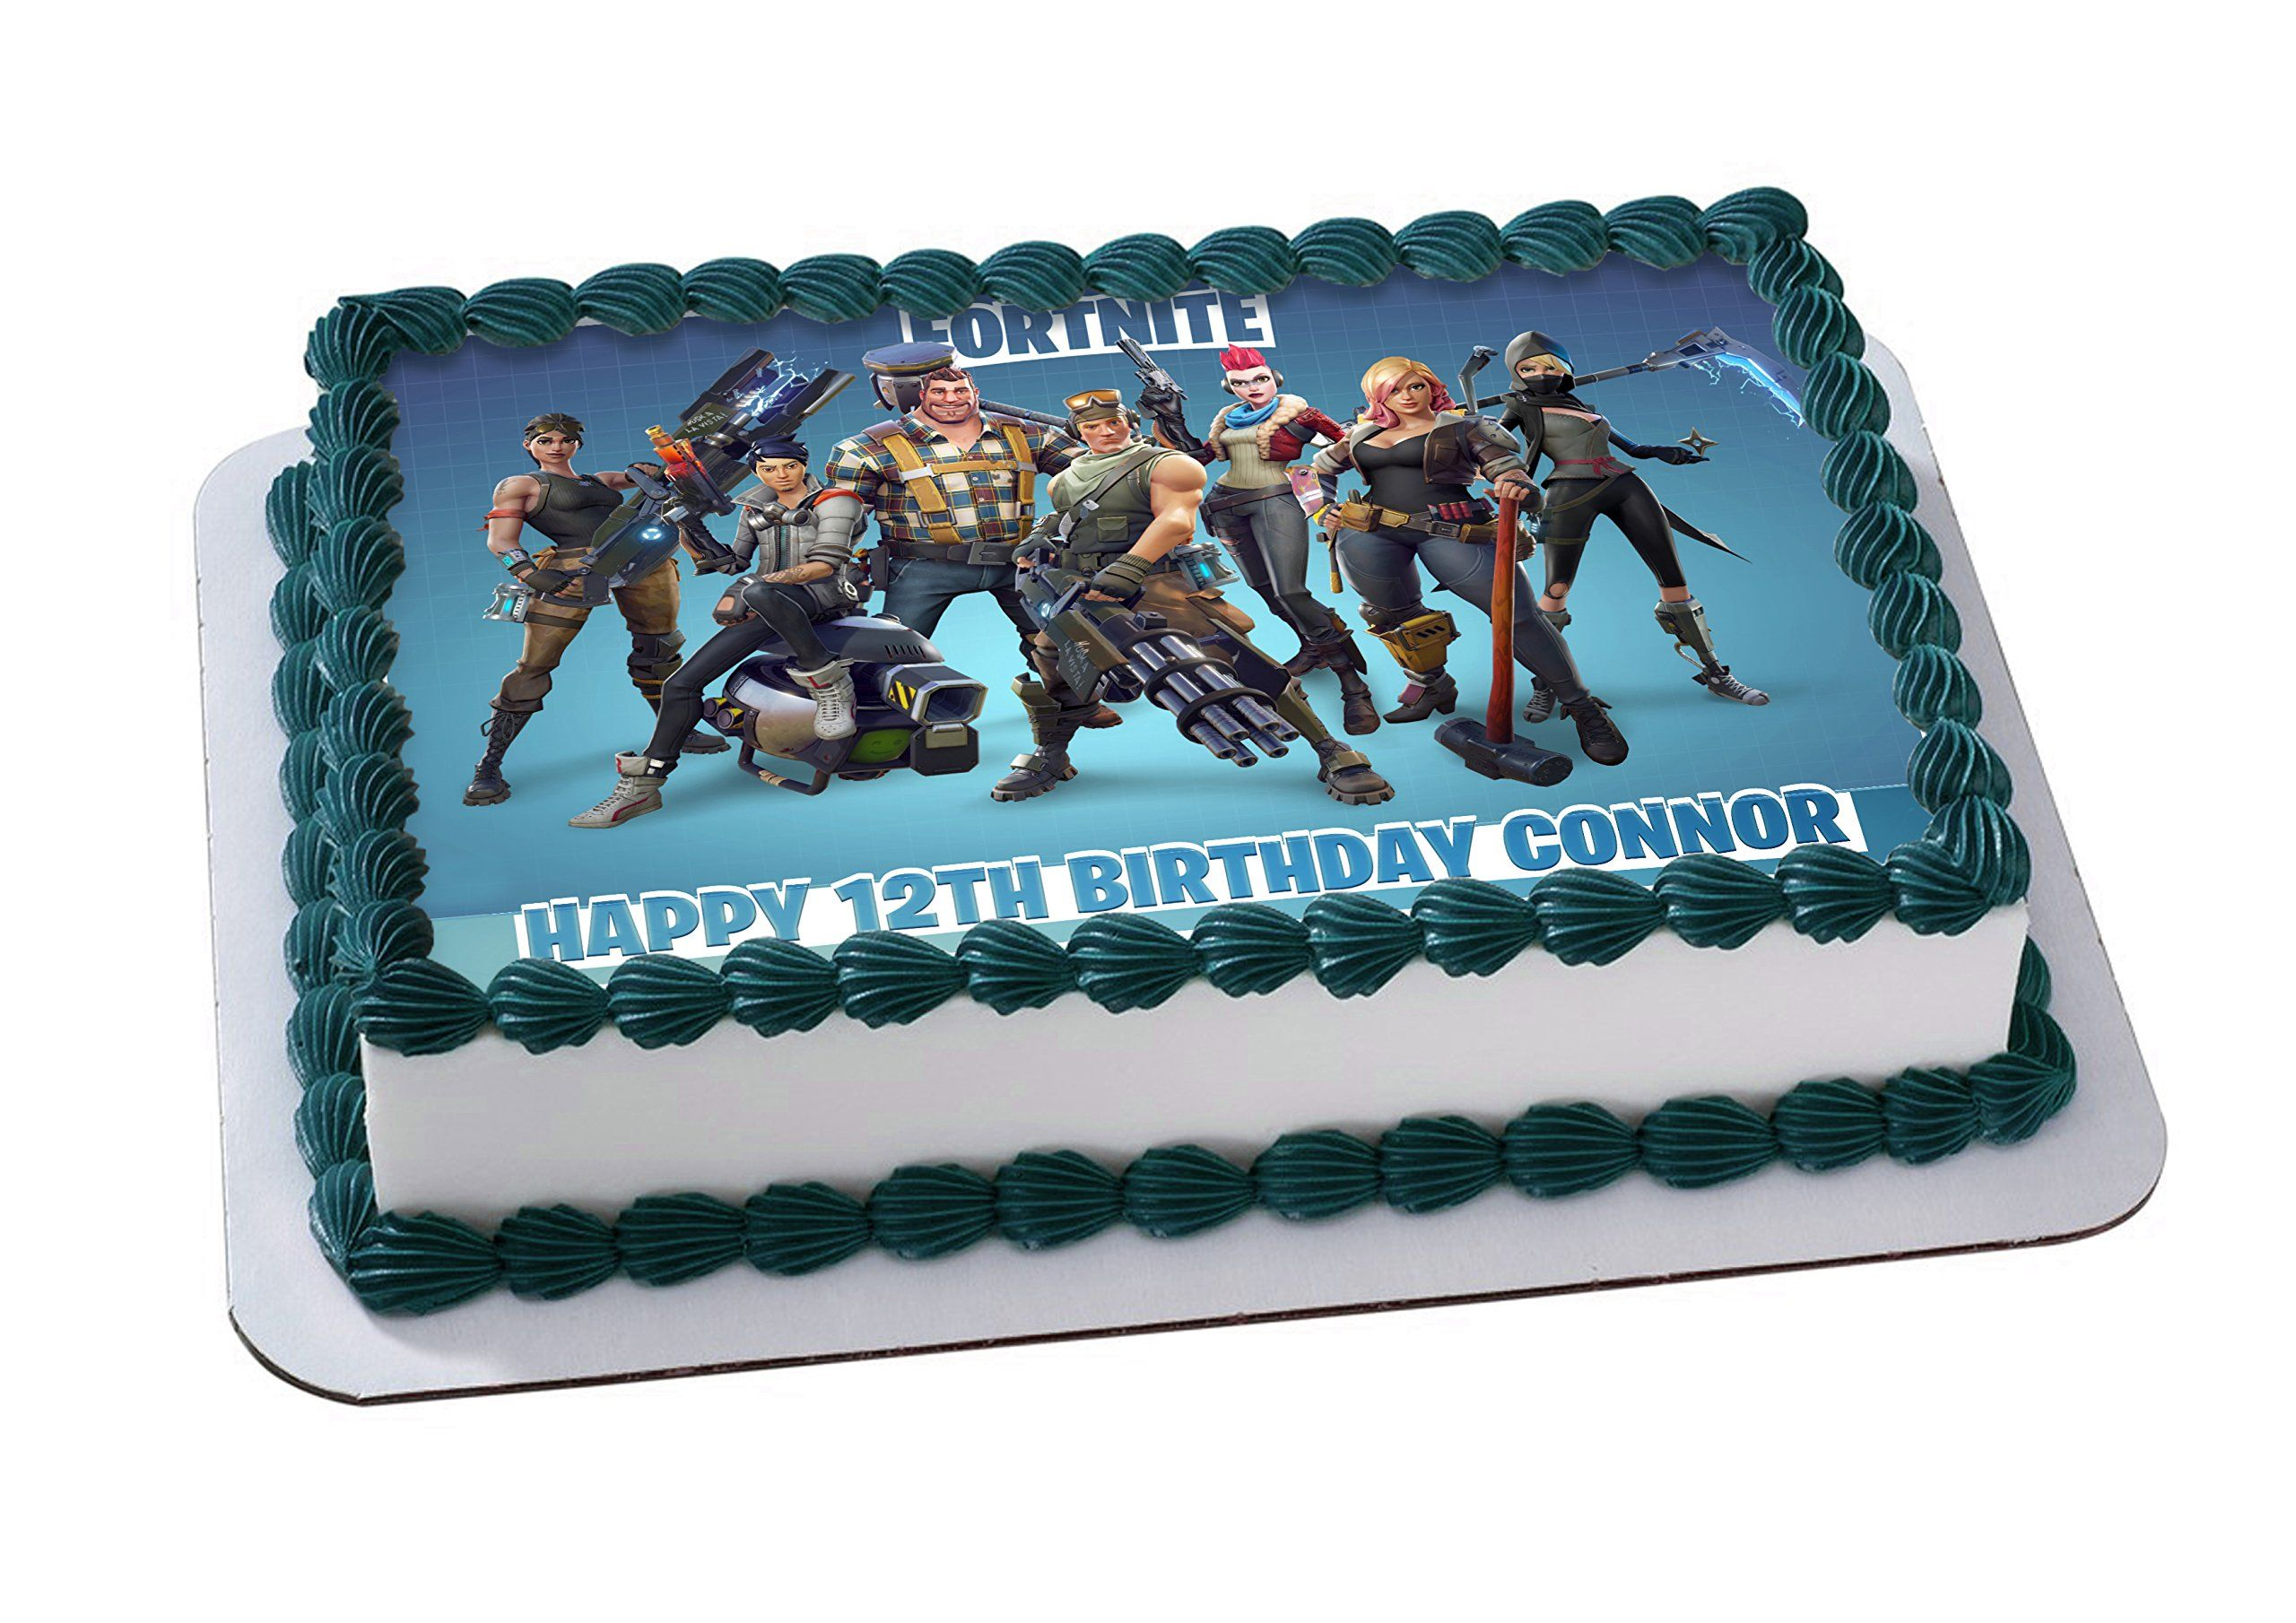 photograph relating to Printable Edible Cake Toppers called Fortnite Edible Impression Cake Topper Custom made Icing Sugar